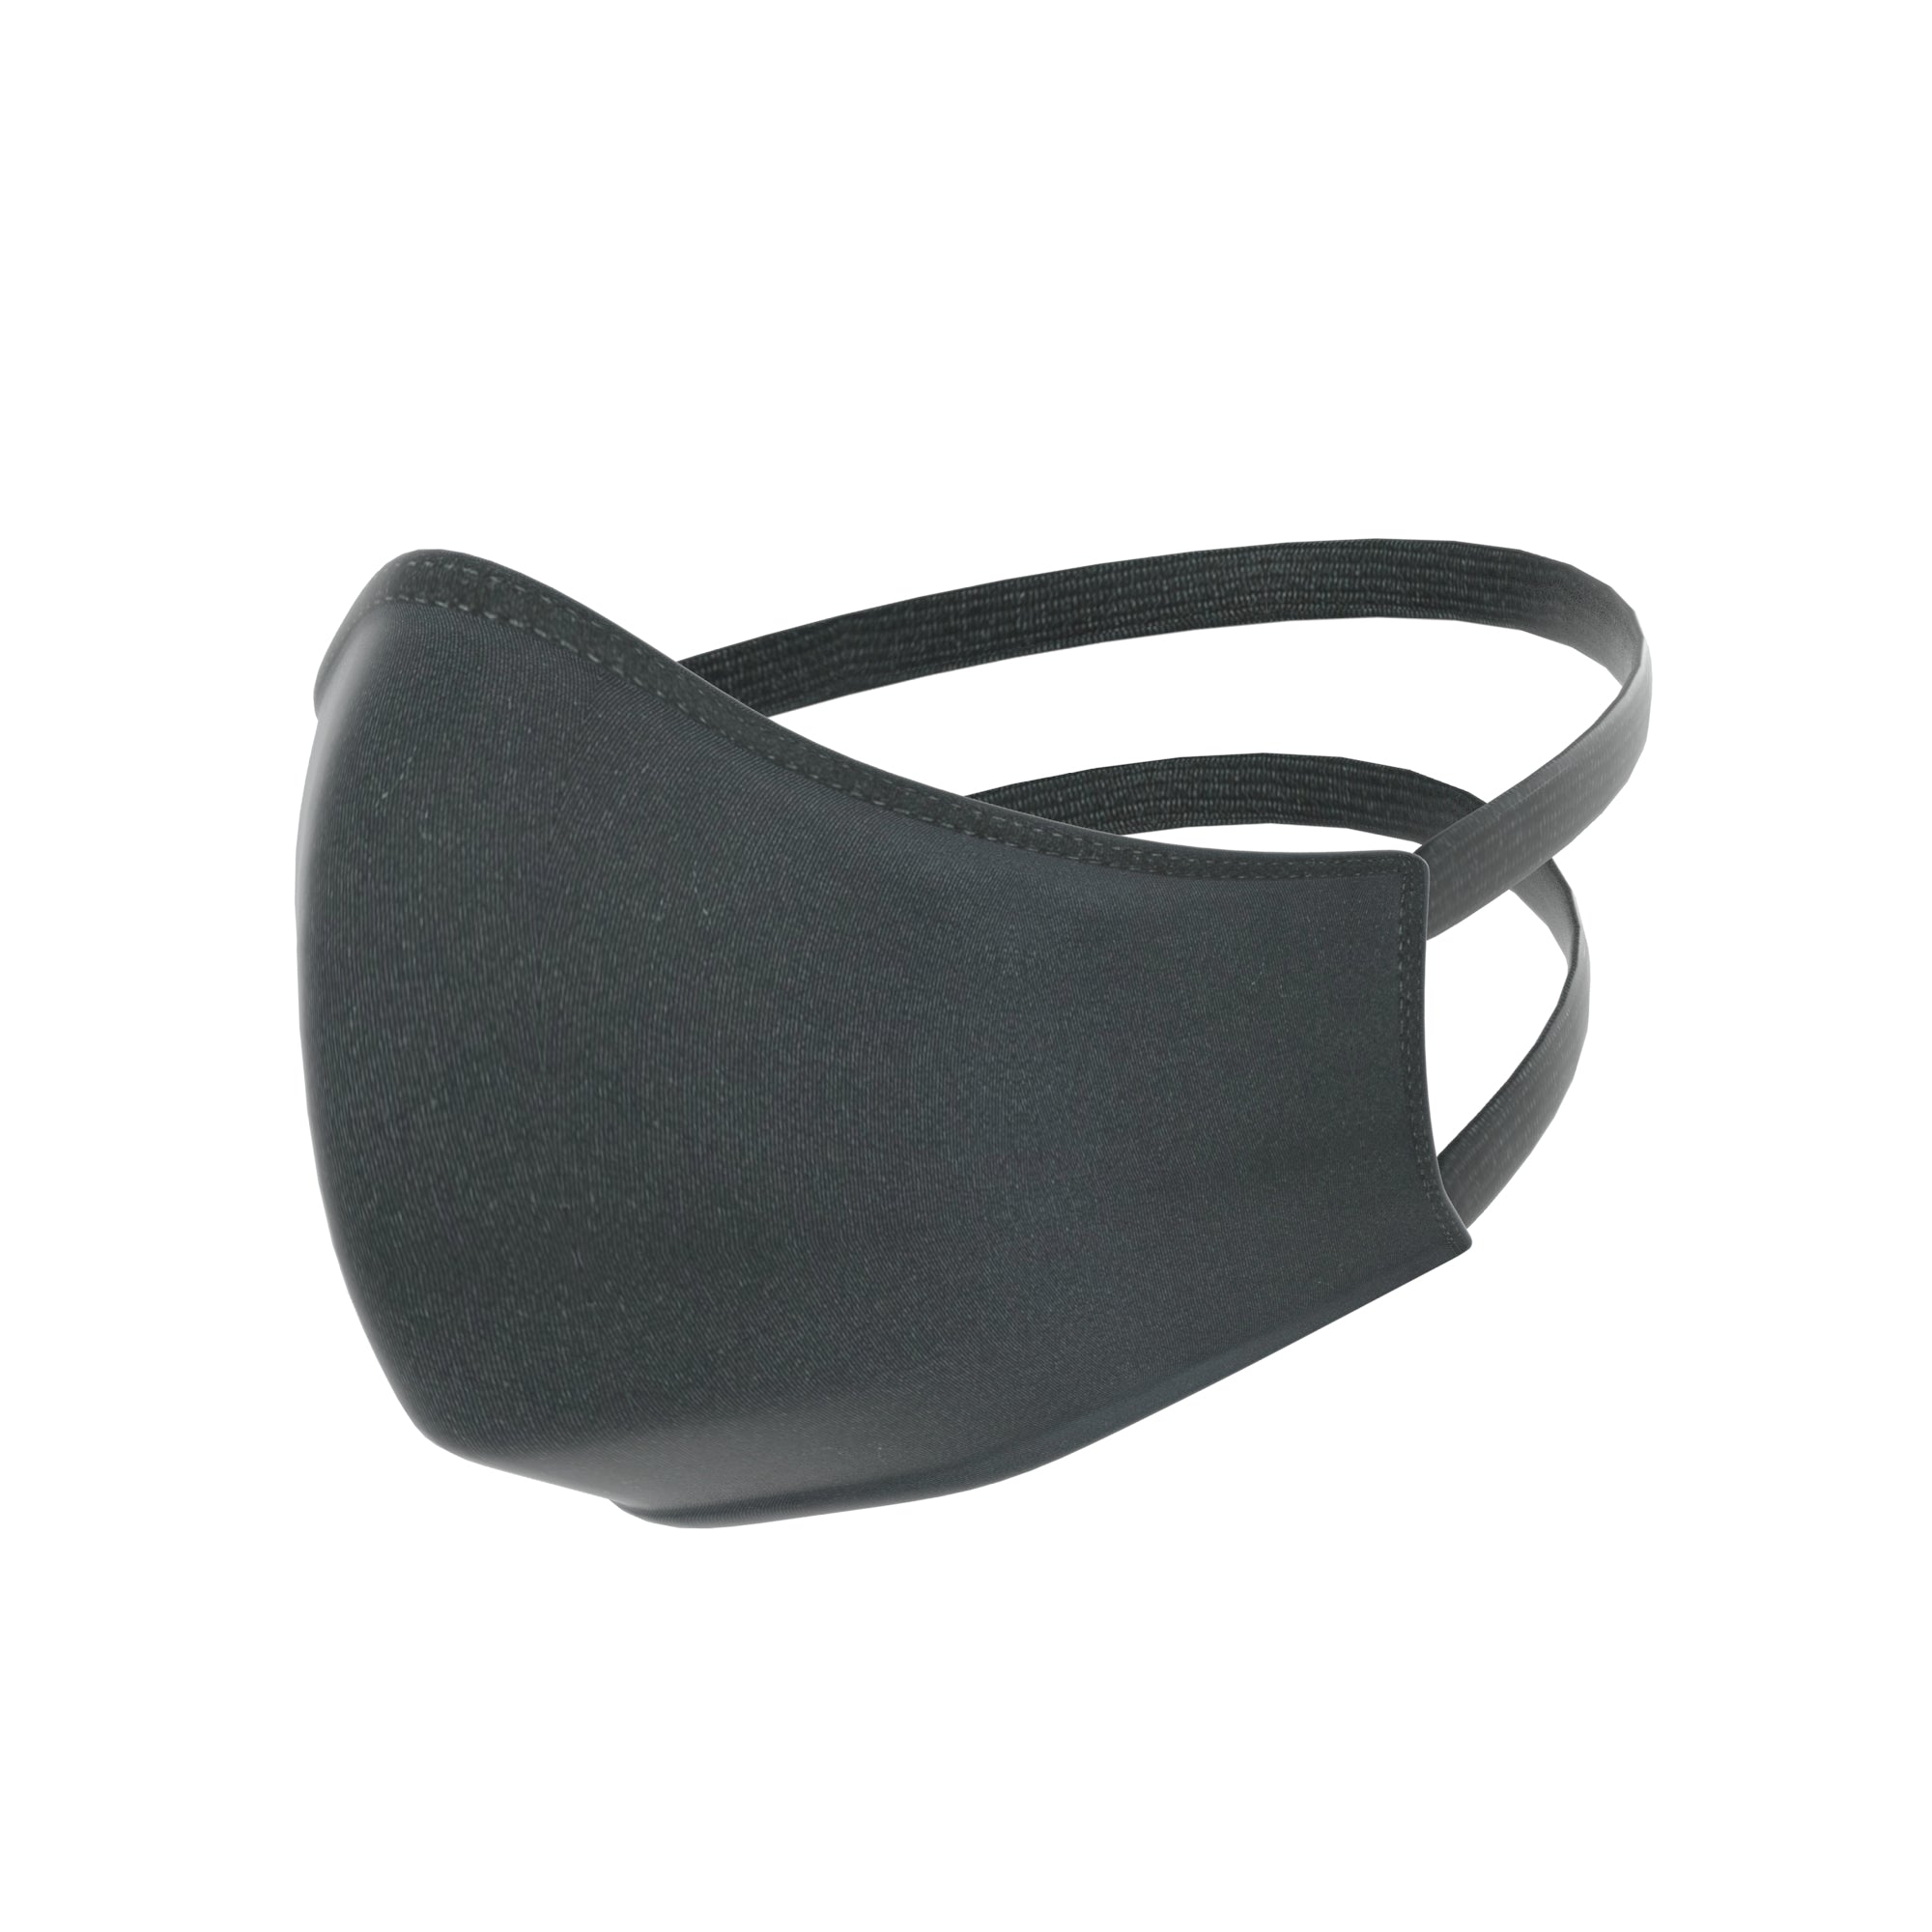 Men's face masks - Malebasics Defender Face Mask available at MensUnderwear.io - Image 1